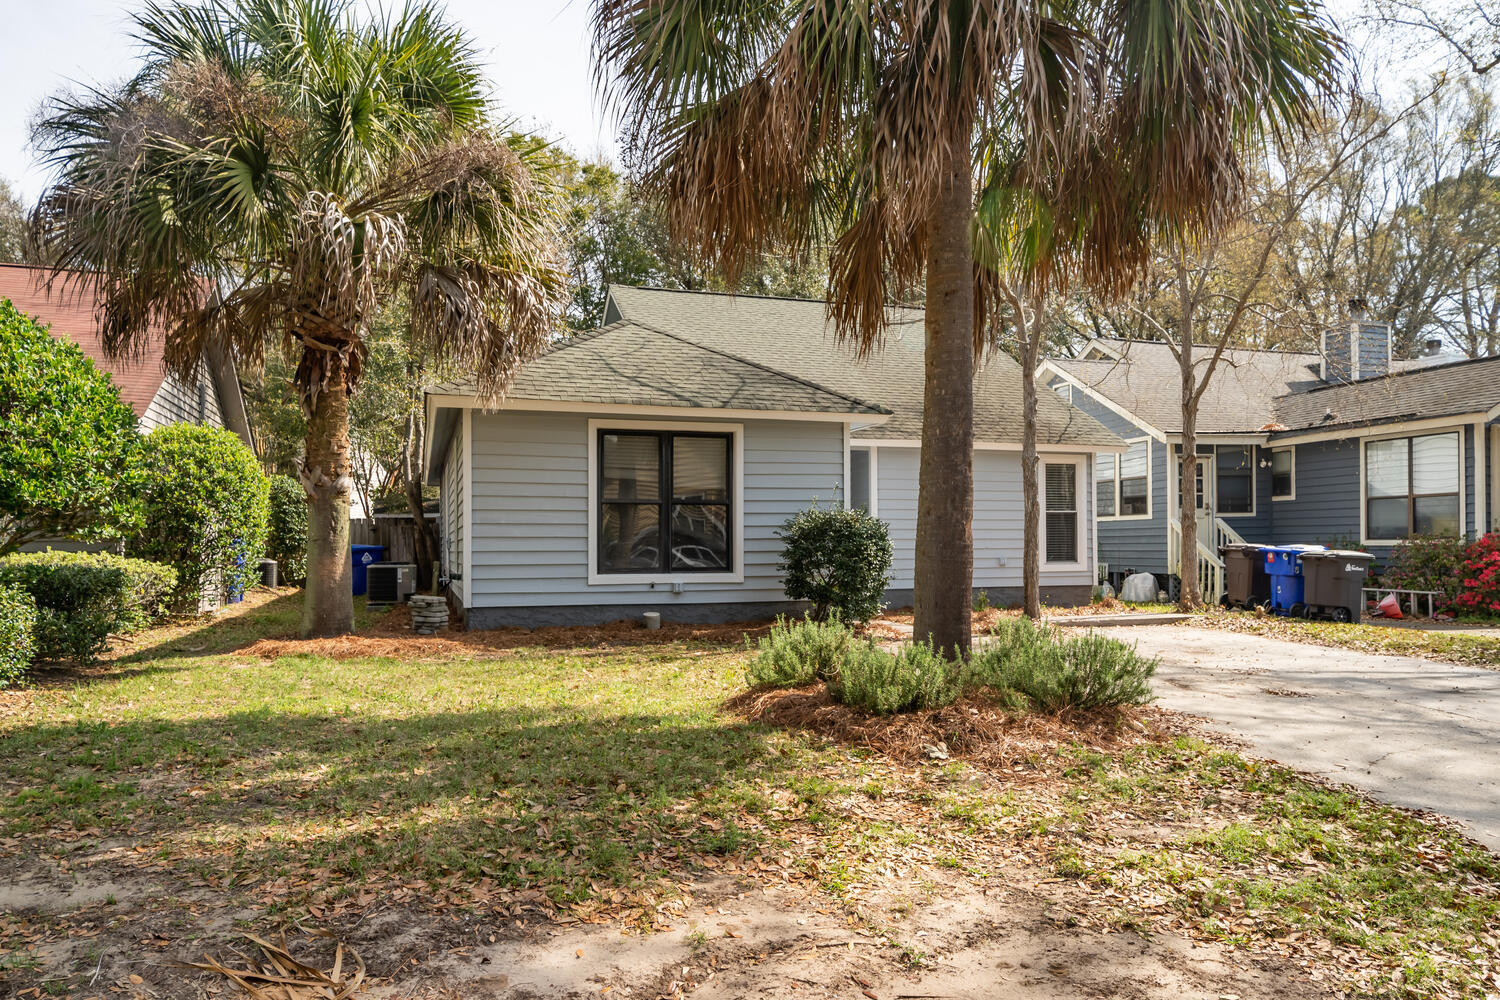 Pirates Cove Homes For Sale - 1510 Privateer, Mount Pleasant, SC - 12